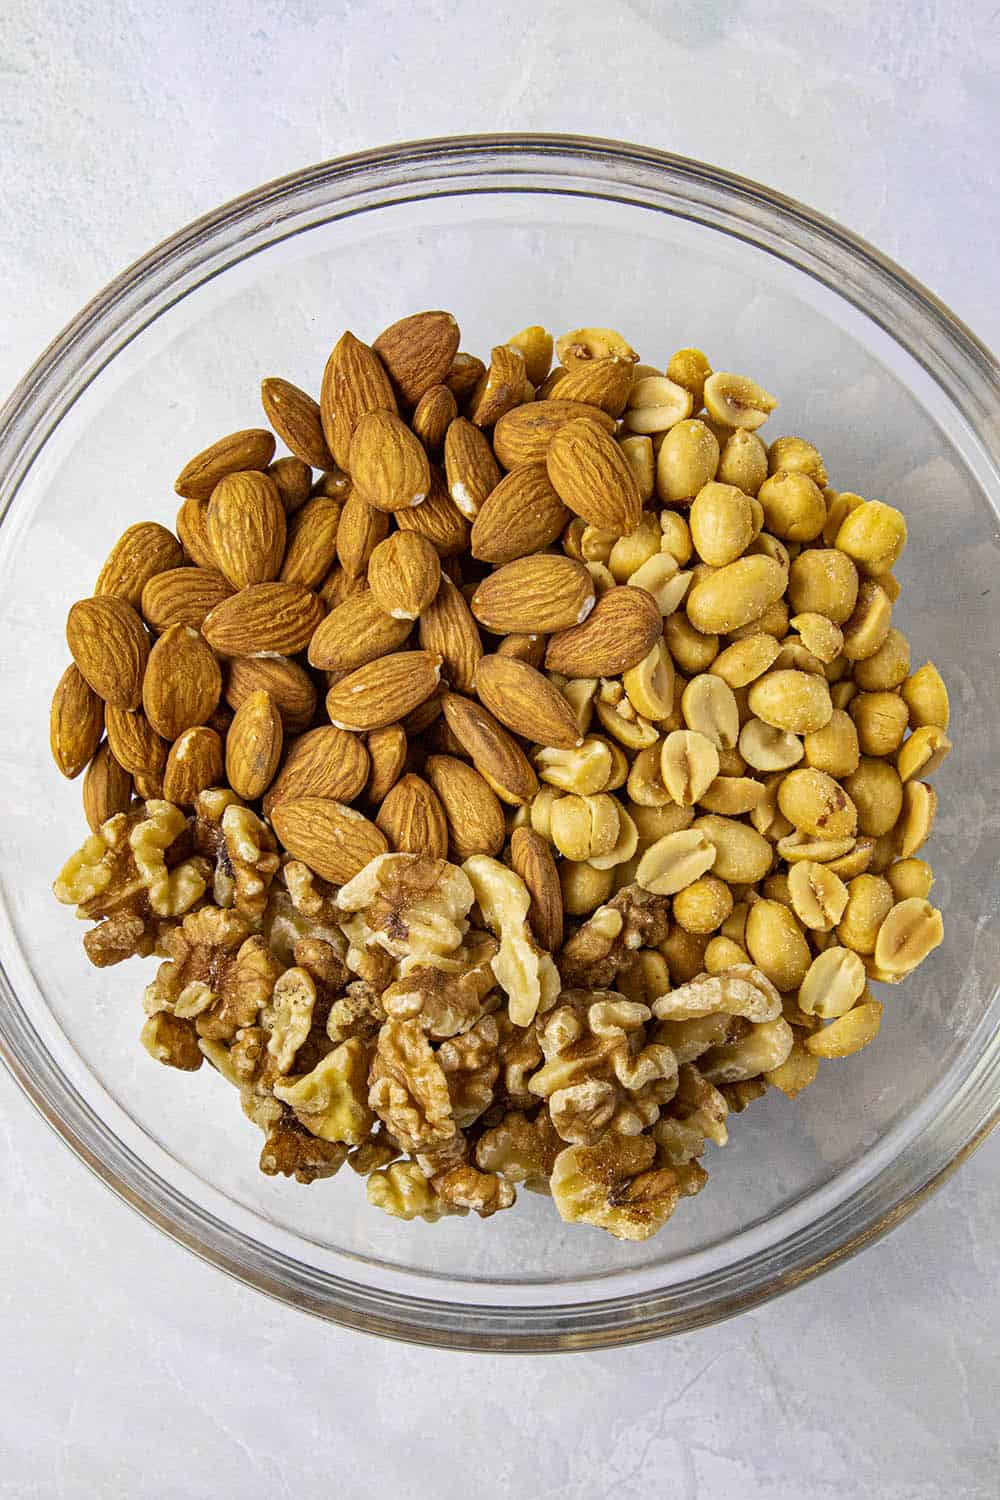 Raw pecans, almonds and peanuts for making spiced nuts